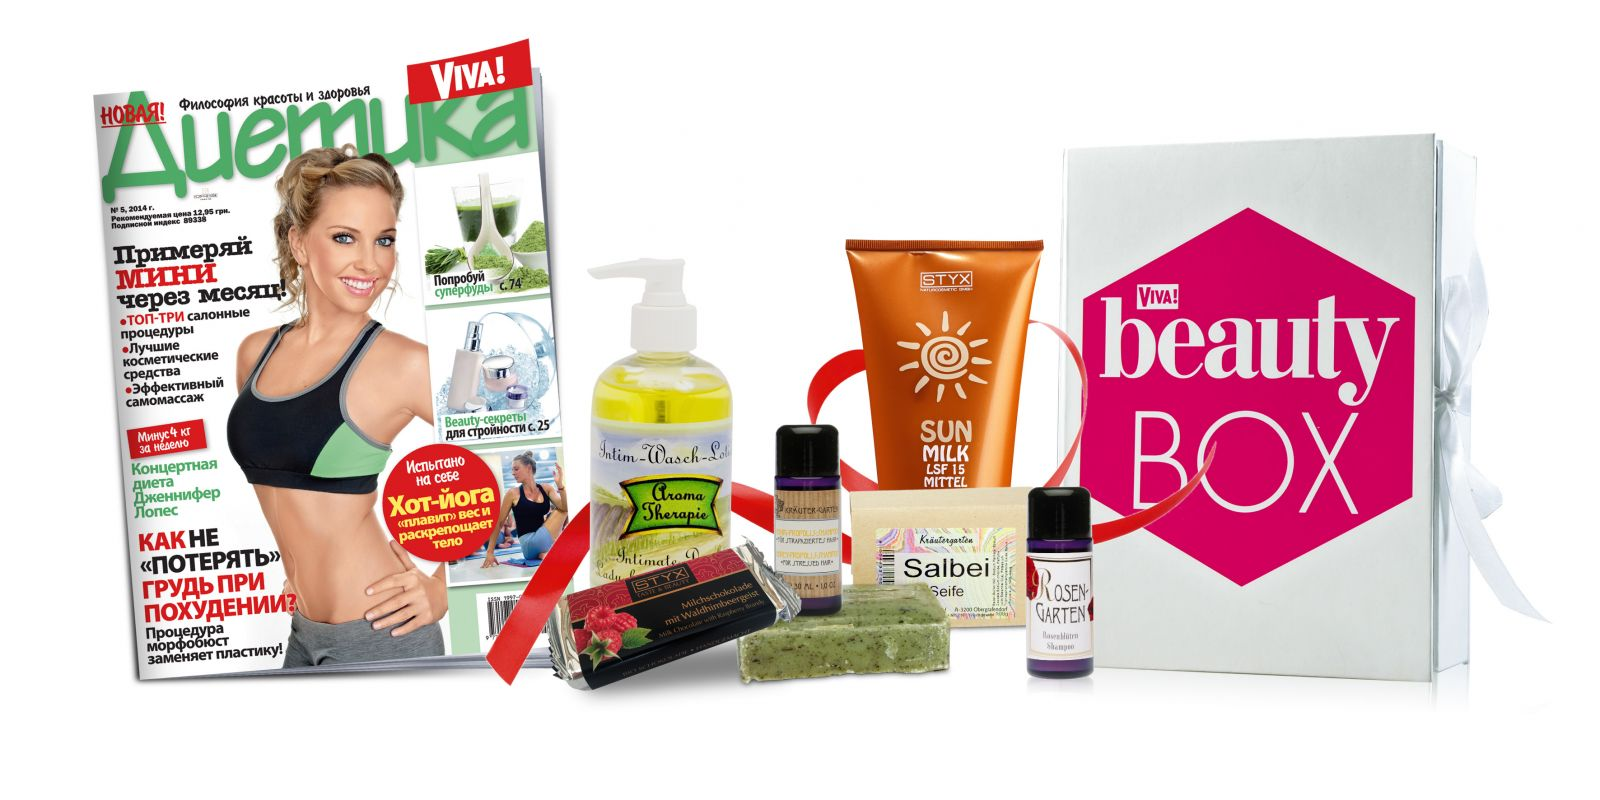 Viva! beauty BOX заказать